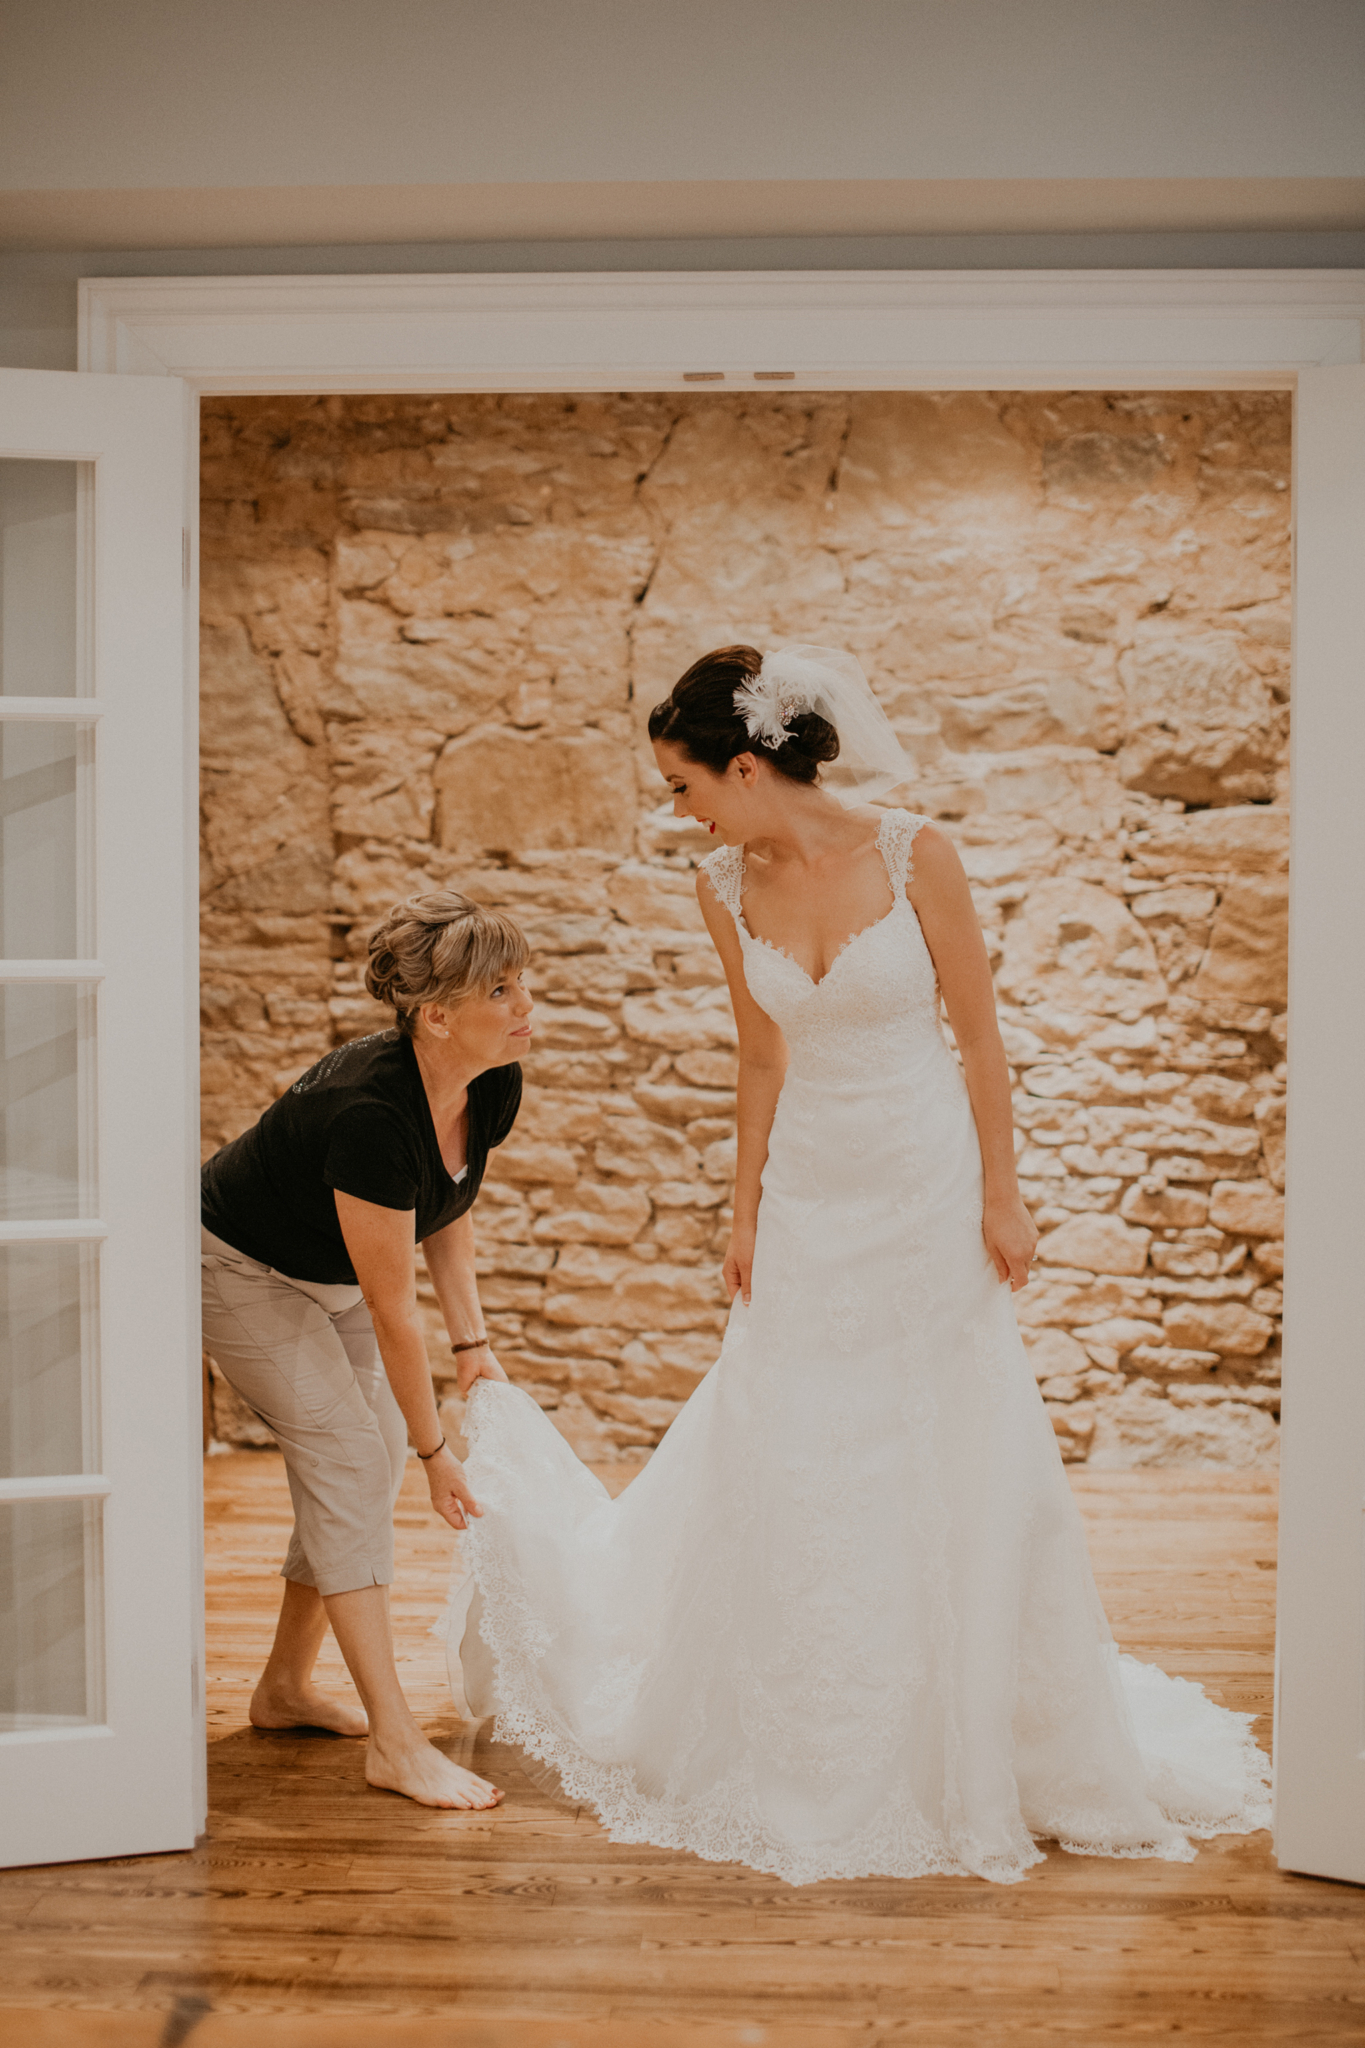 Mother of bride helps bride put on wedding dress